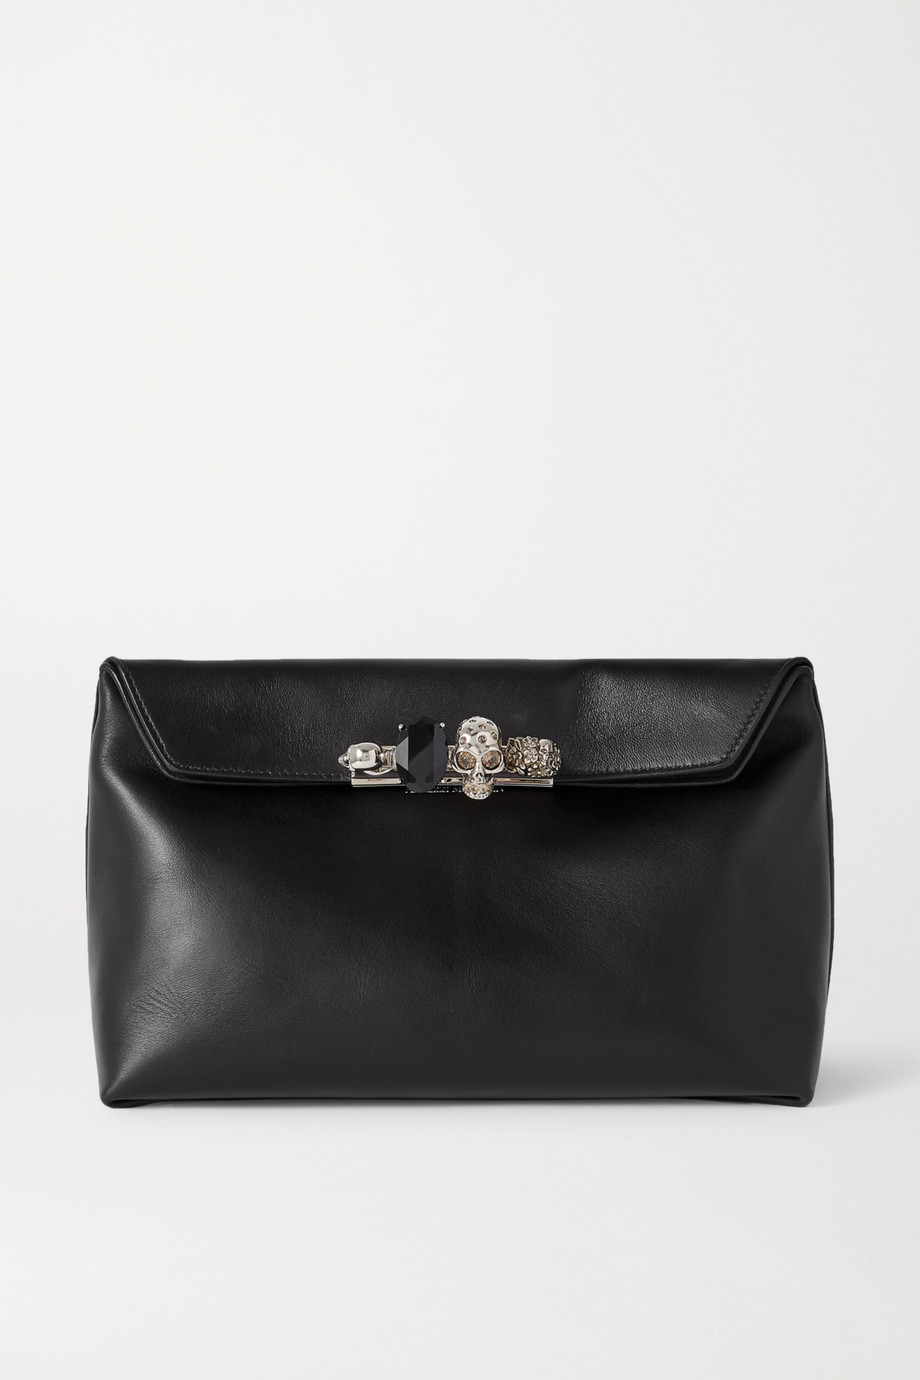 Alexander McQueen Four Ring embellished leather pouch